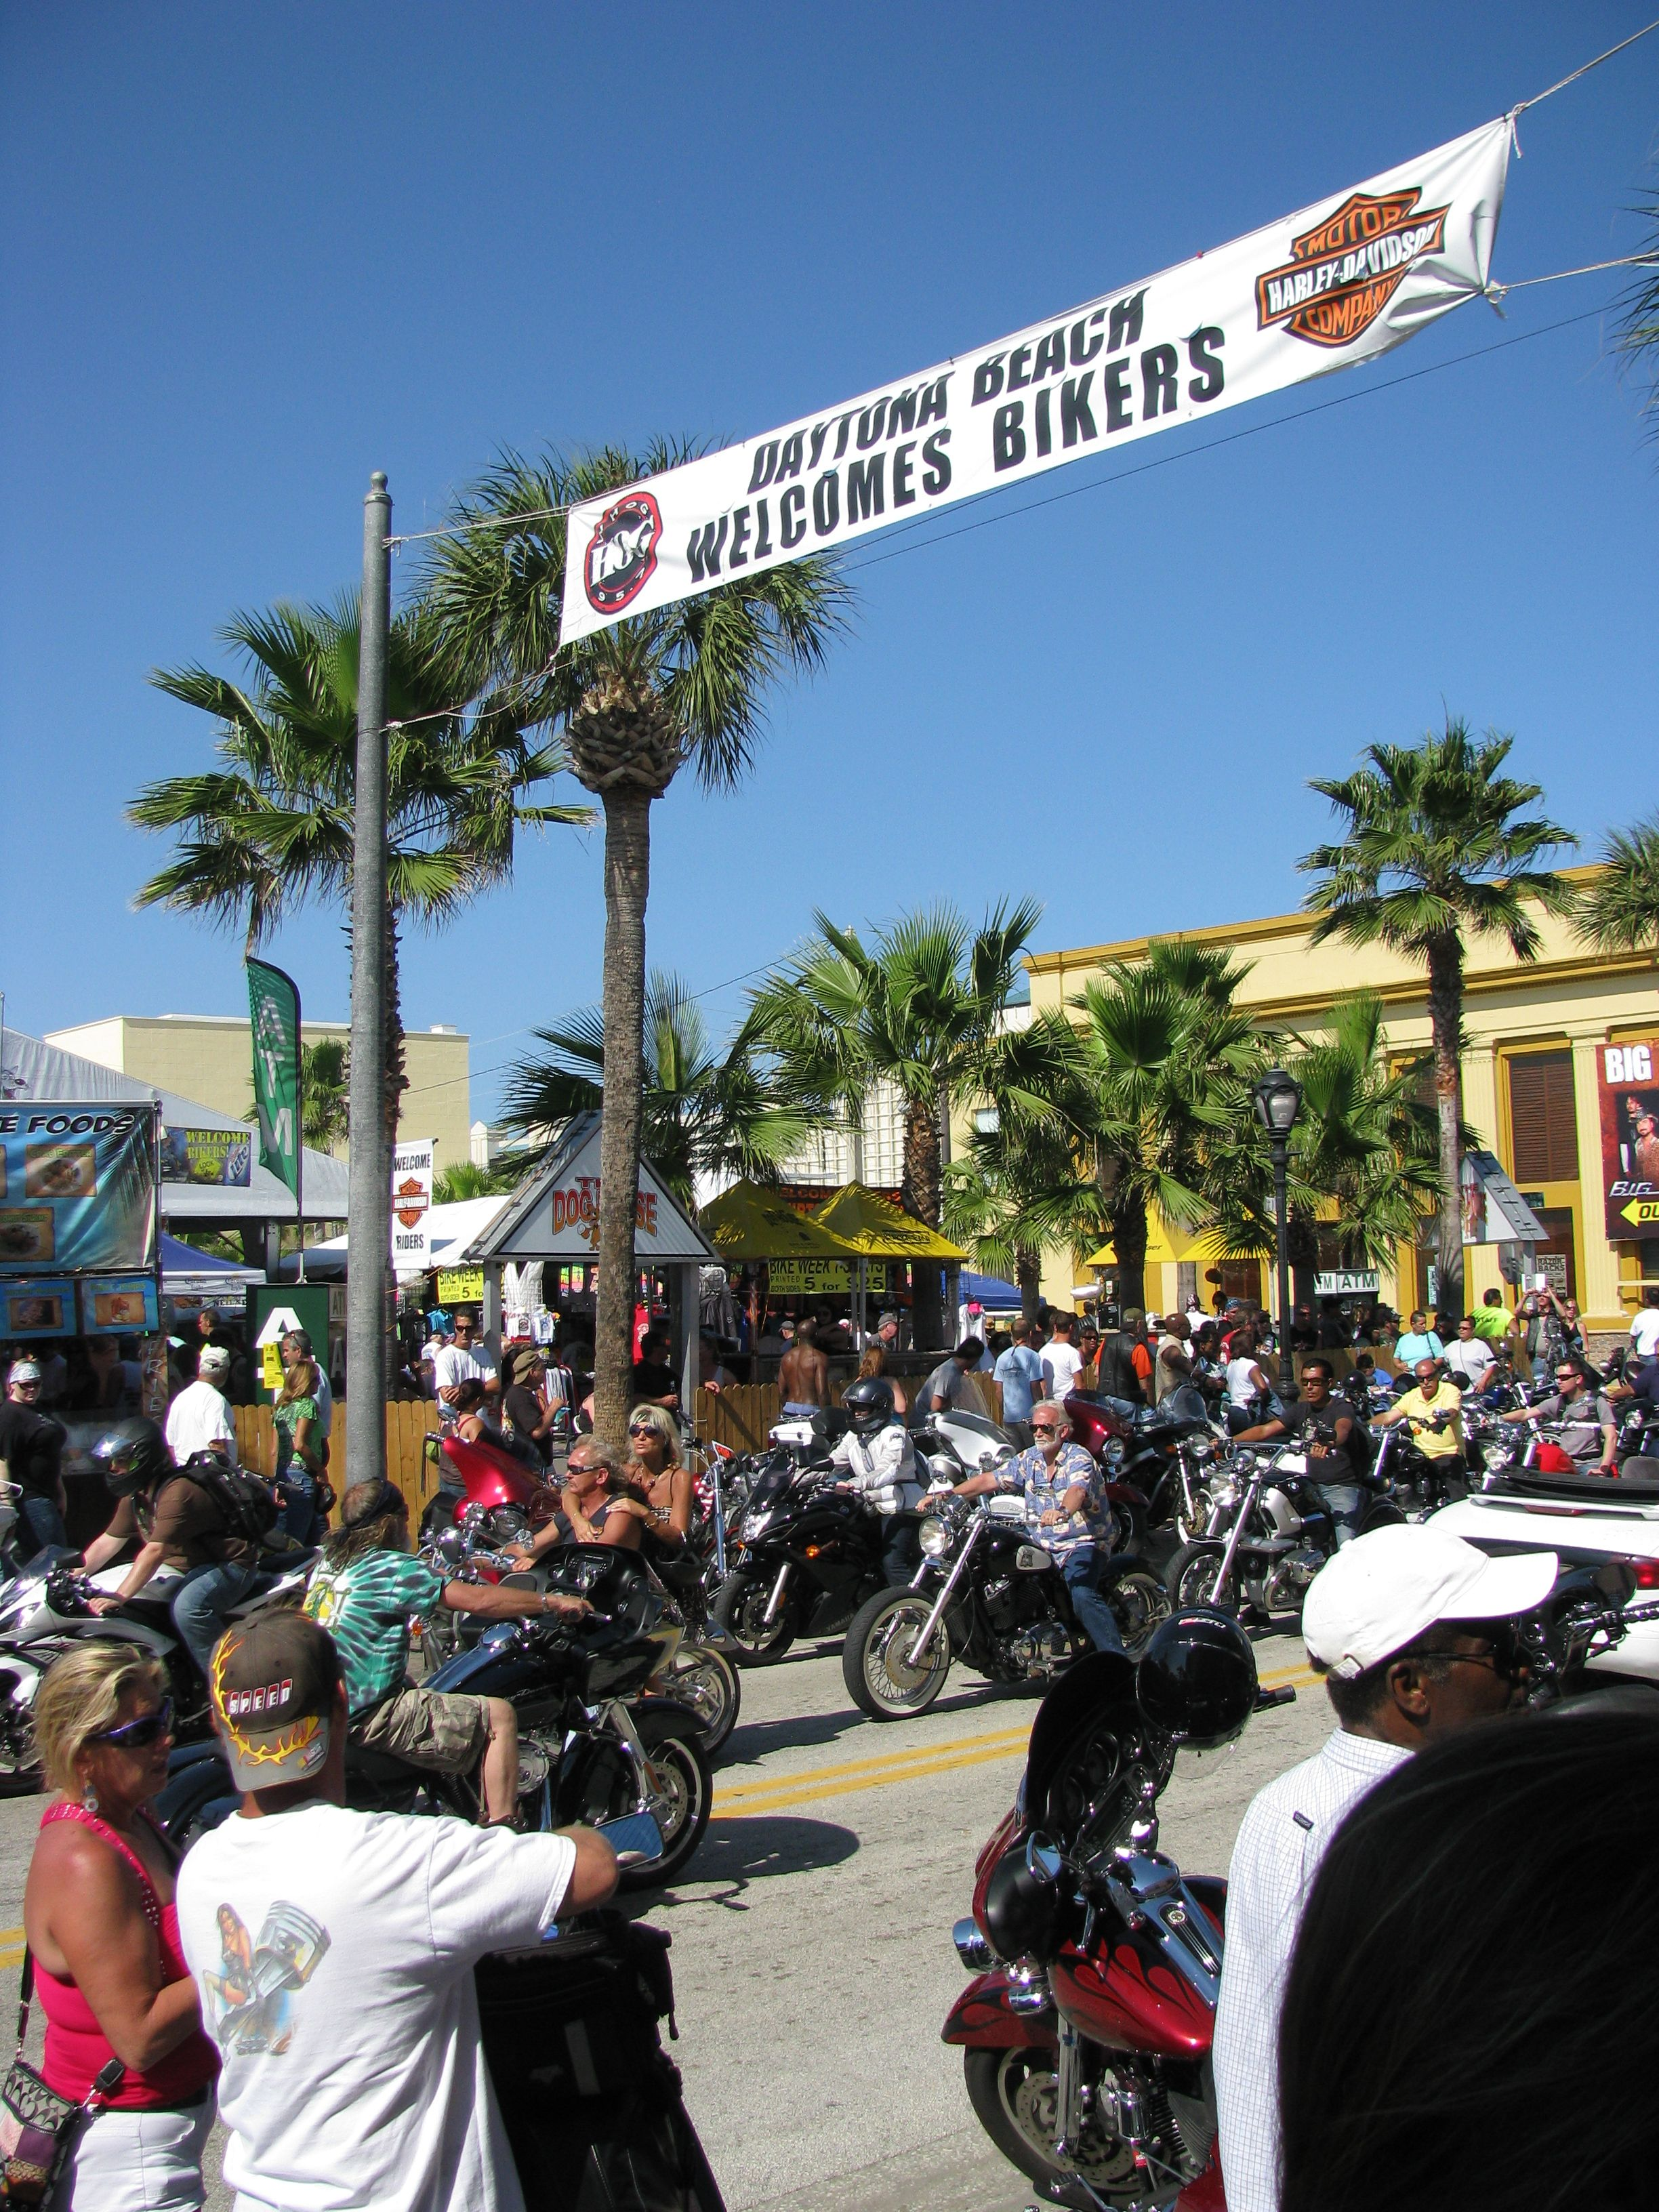 Daytona Bike Week 2012 Bikers Gear Pinterest Trips Pants And We